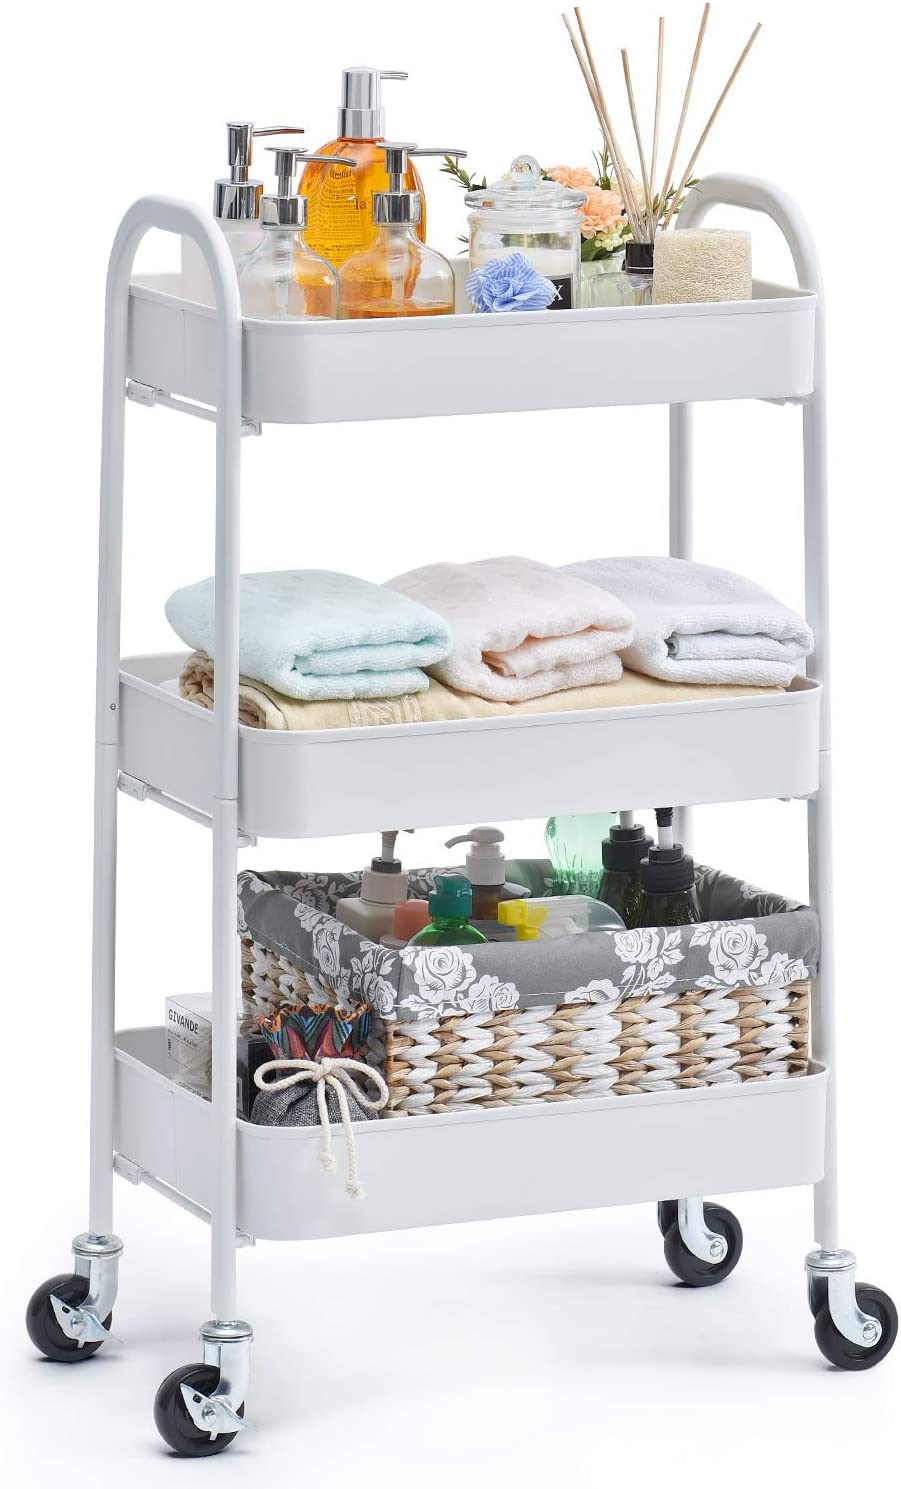 TOOLF 3 Tier Rolling Cart, No Screw Metal Utility Cart, Easy Assemble Utility Serving Cart, Sturdy Storage Trolley with Handles, Locking Wheels, for Classroom Office Home Bedroom Bathroom, White